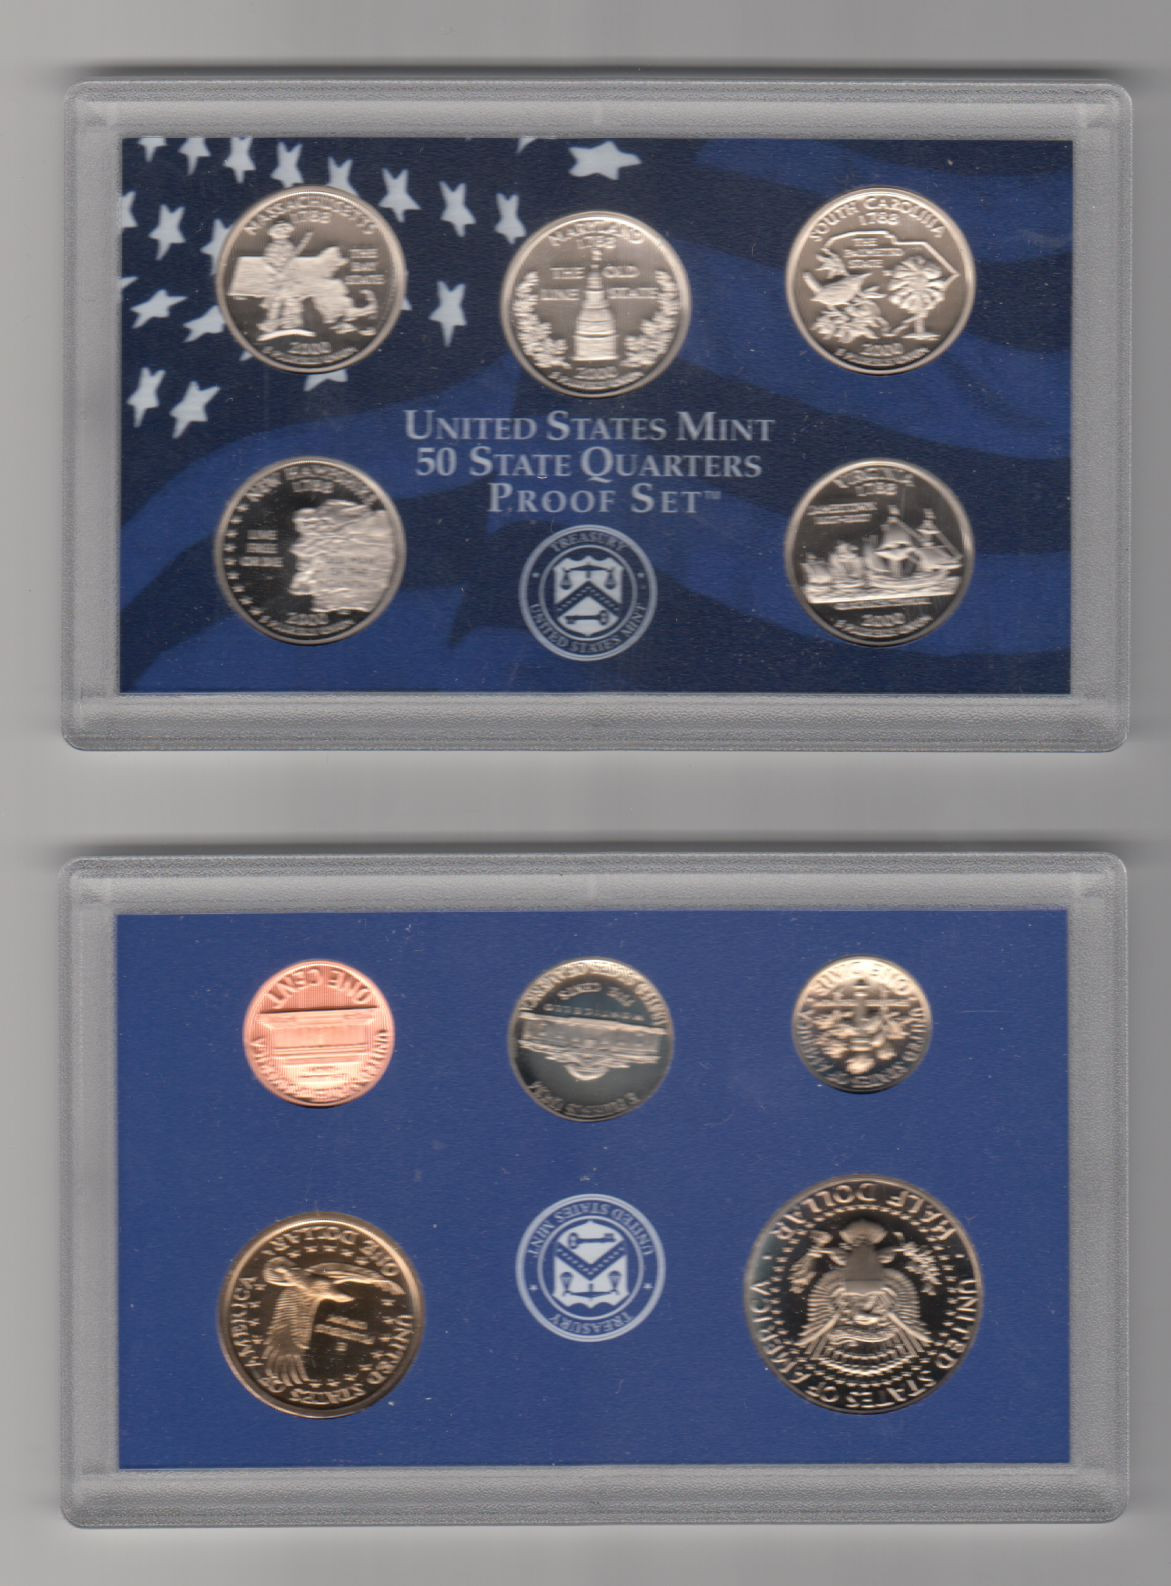 Awesome 10 Coins 50 State Quarters Proof Set Us Mint 2000 State Quarter Set Value Of New 2007 P & D United States Mint Uncirculated Coin Set State Quarter Set Value